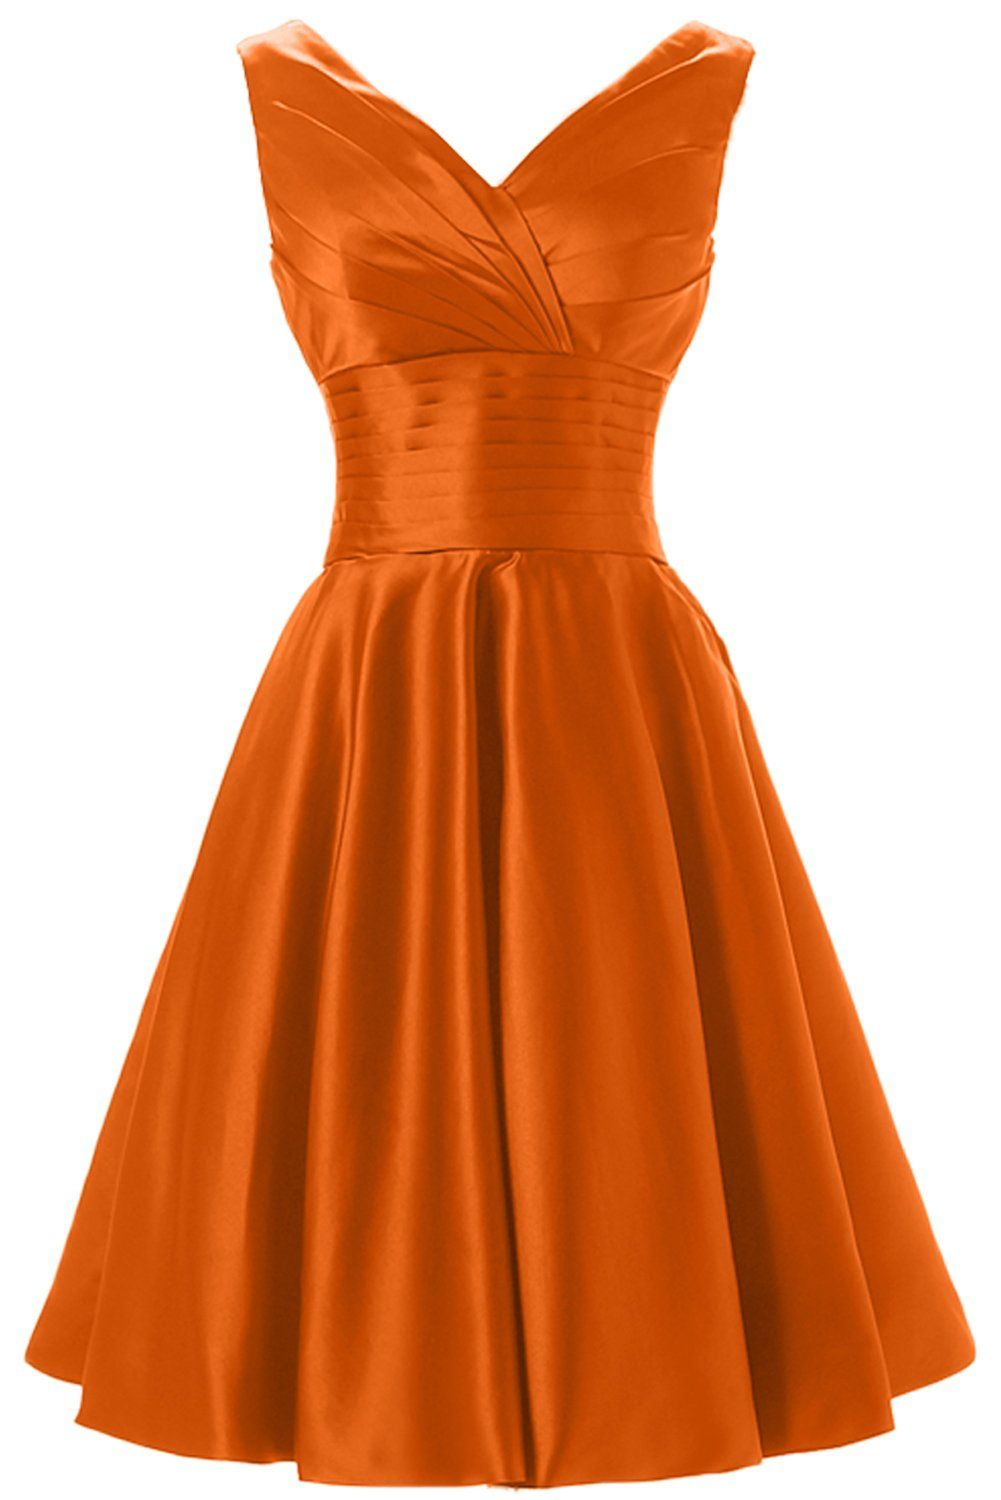 a25958542809 QY Bride Knee Length Formal Holiday Party Dresses V Neck Bridesmaid Dress  18 Orange >>> Continue to the product at the image link.